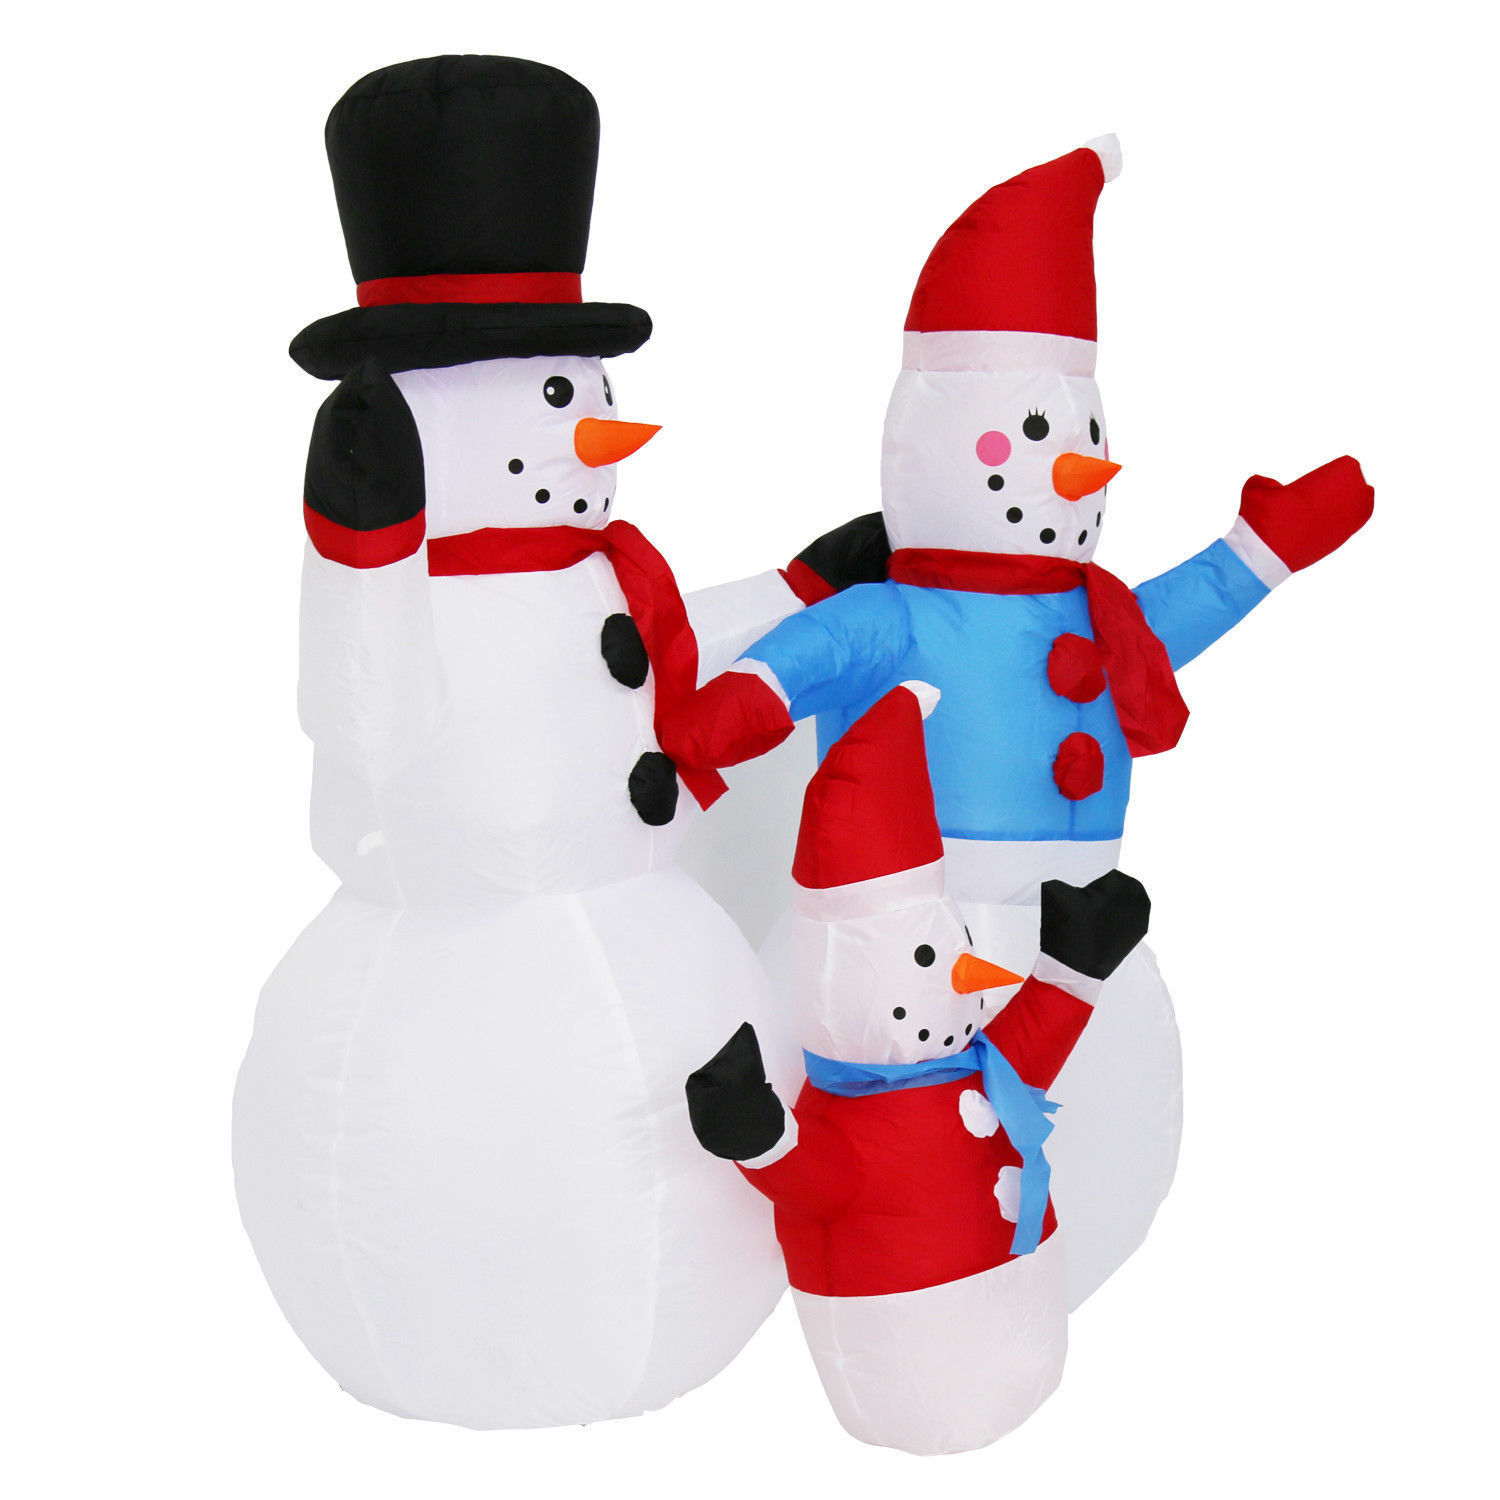 Christmas Yard Inflatable Snowman Family Air and 13 similar items